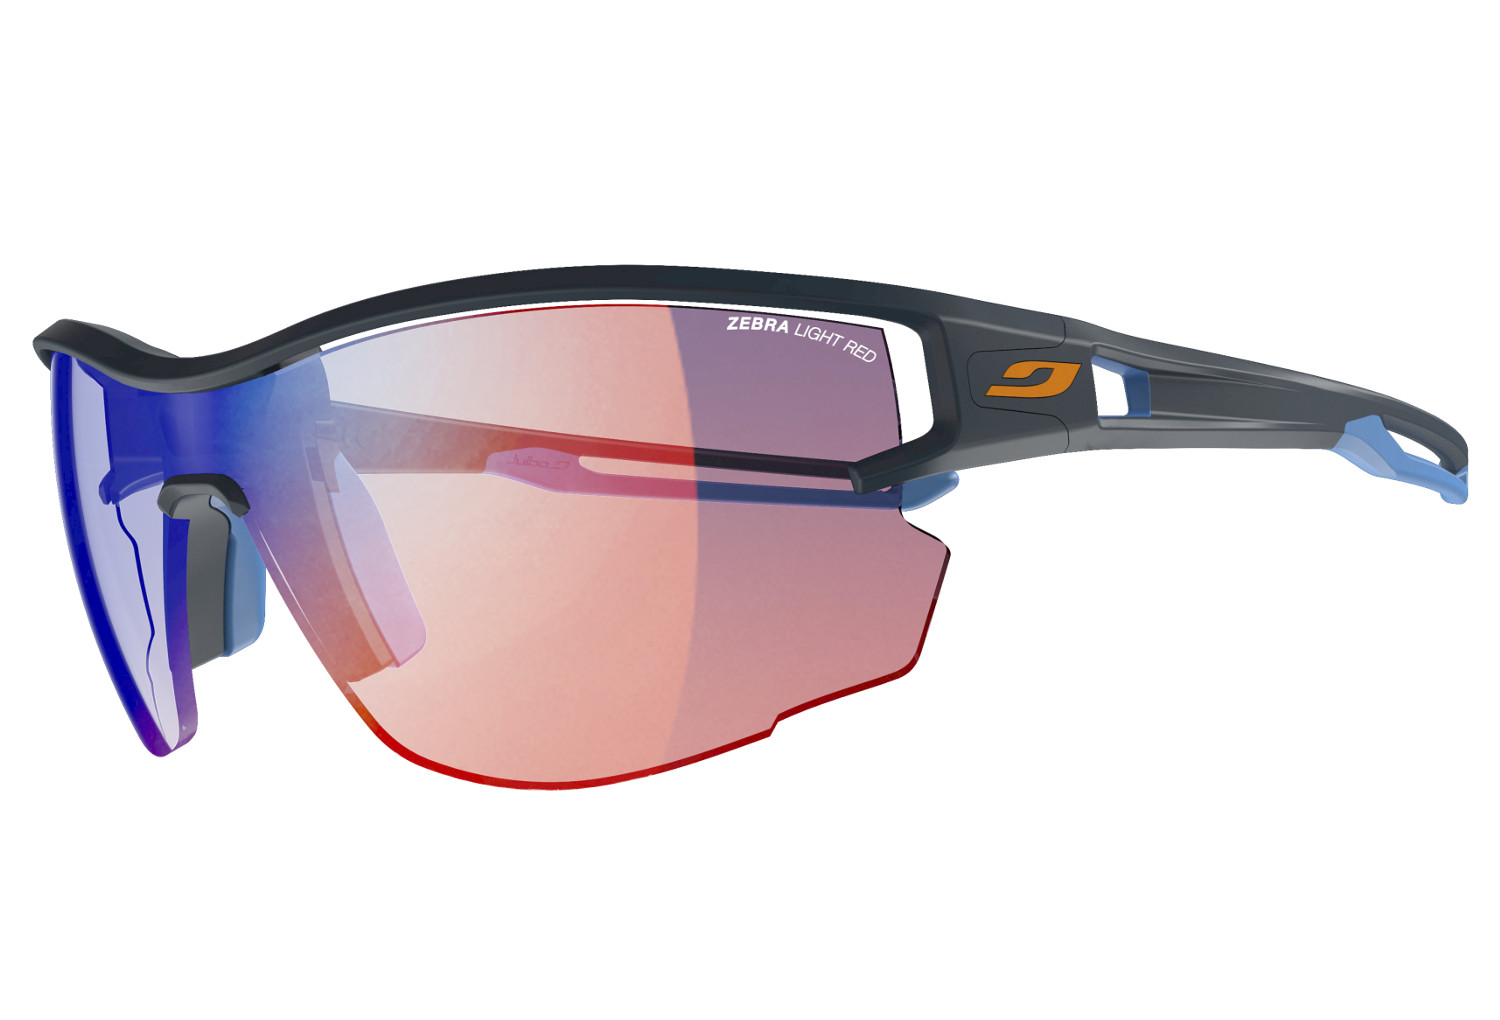 82c97791b2 Lunettes Julbo Aero Zebra Light Bleu - Rouge Transparent | Alltricks.fr